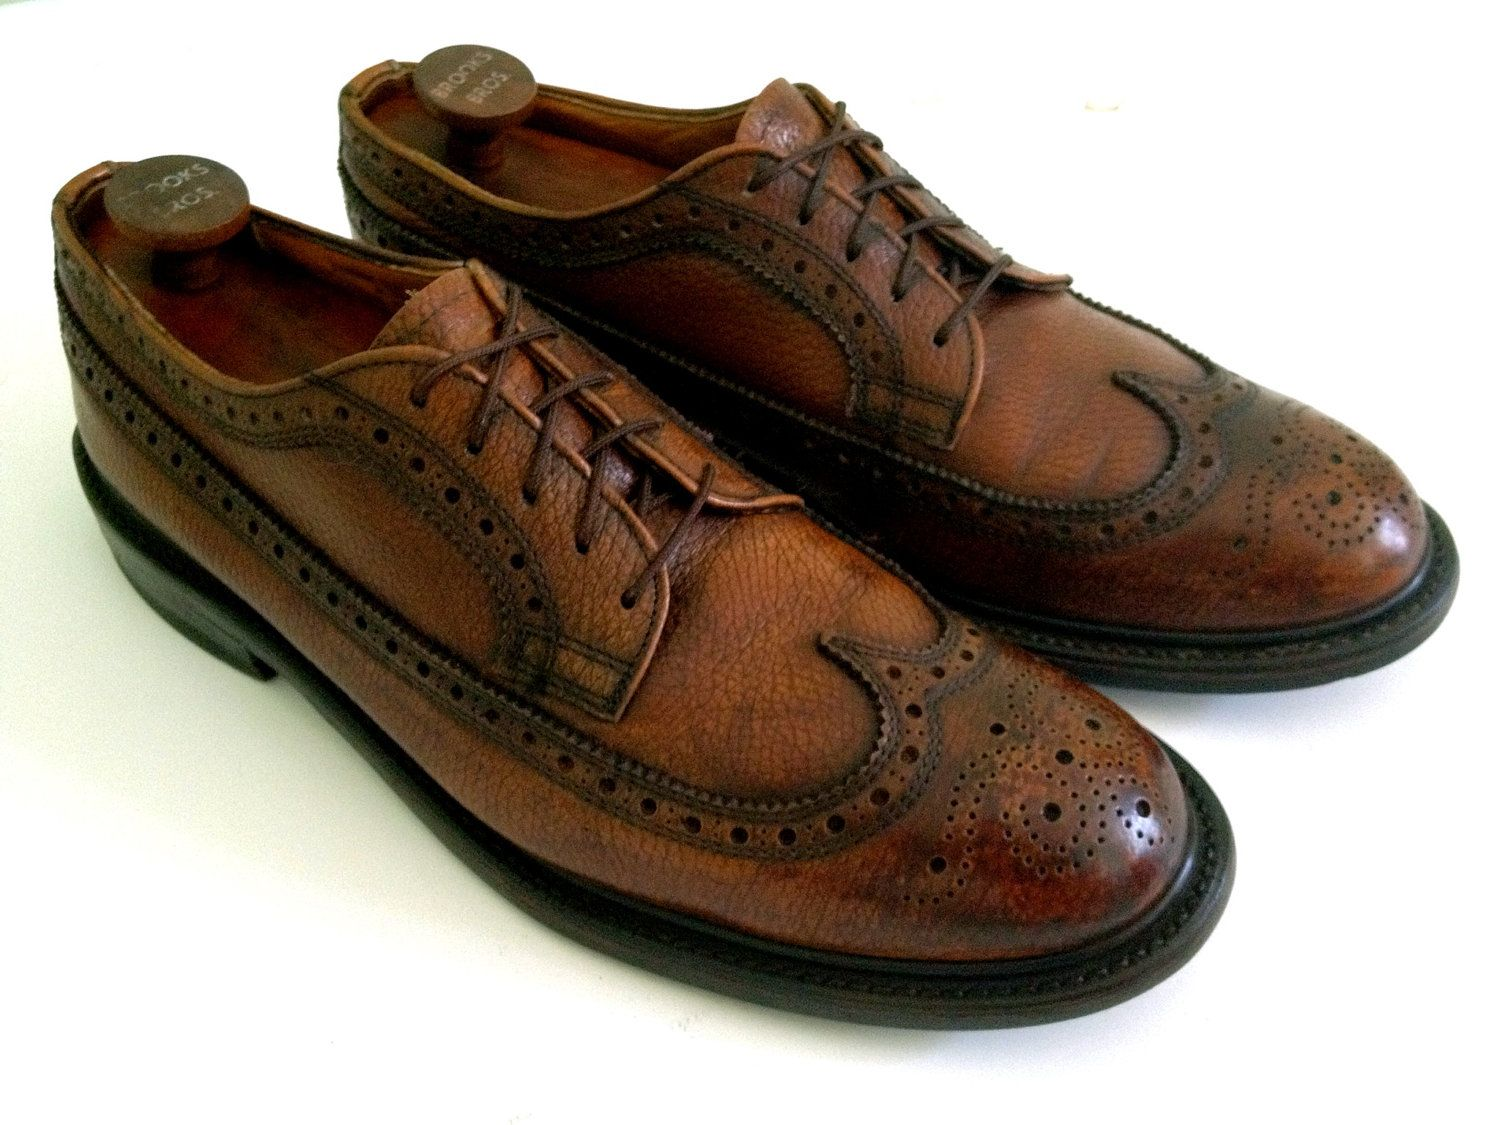 RESERVED FOR PAUL -- Vintage Men's Mid-Century Chestnut Brown Pebble Grain  Longwing Brogue Derbys Dress Shoes, 10.5 D 10 1/2